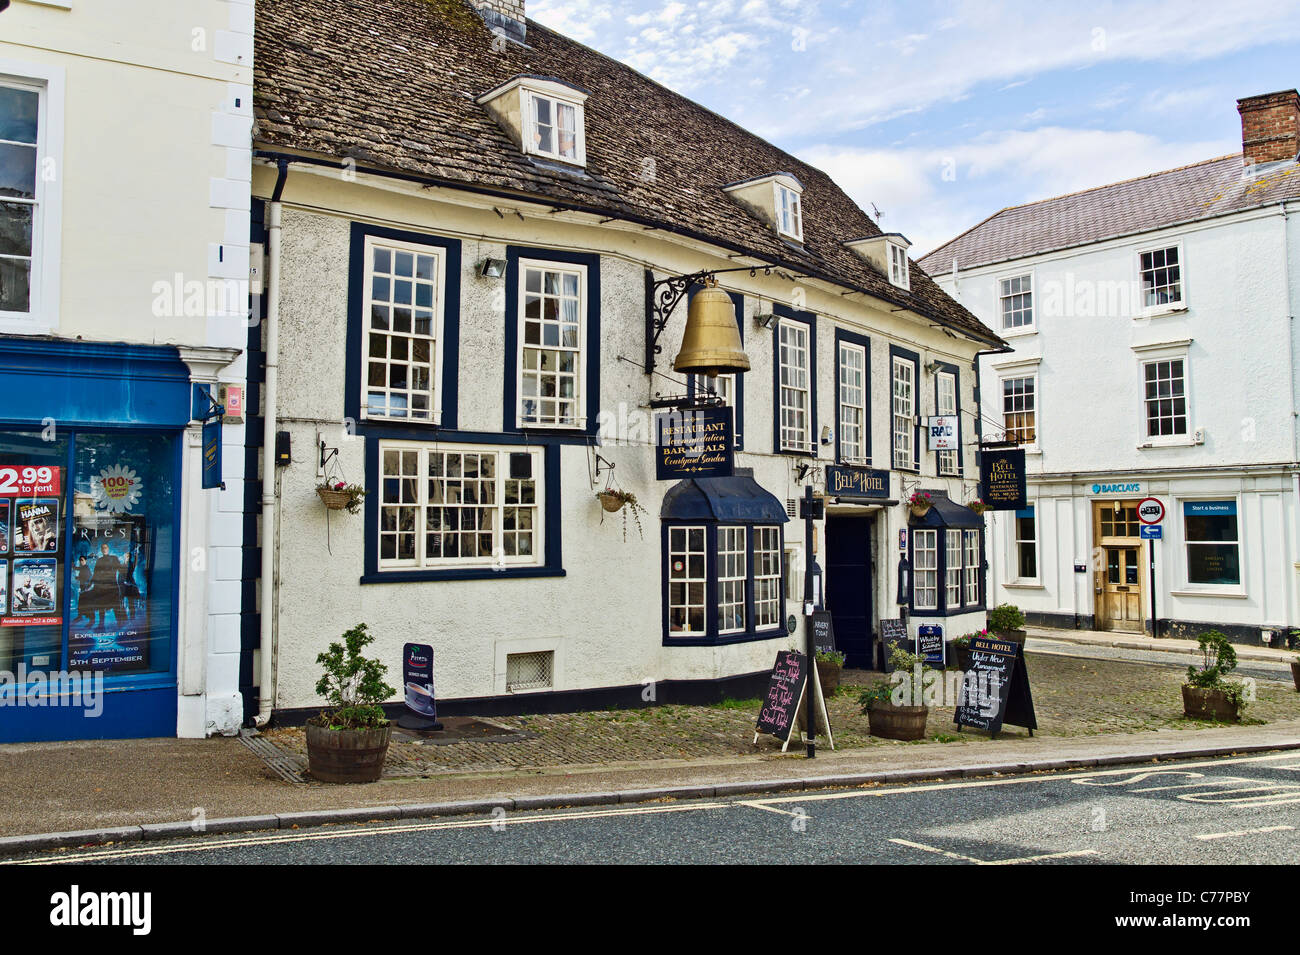 The Bell Hotel in Faringdon Oxfordshire England UK - Stock Image